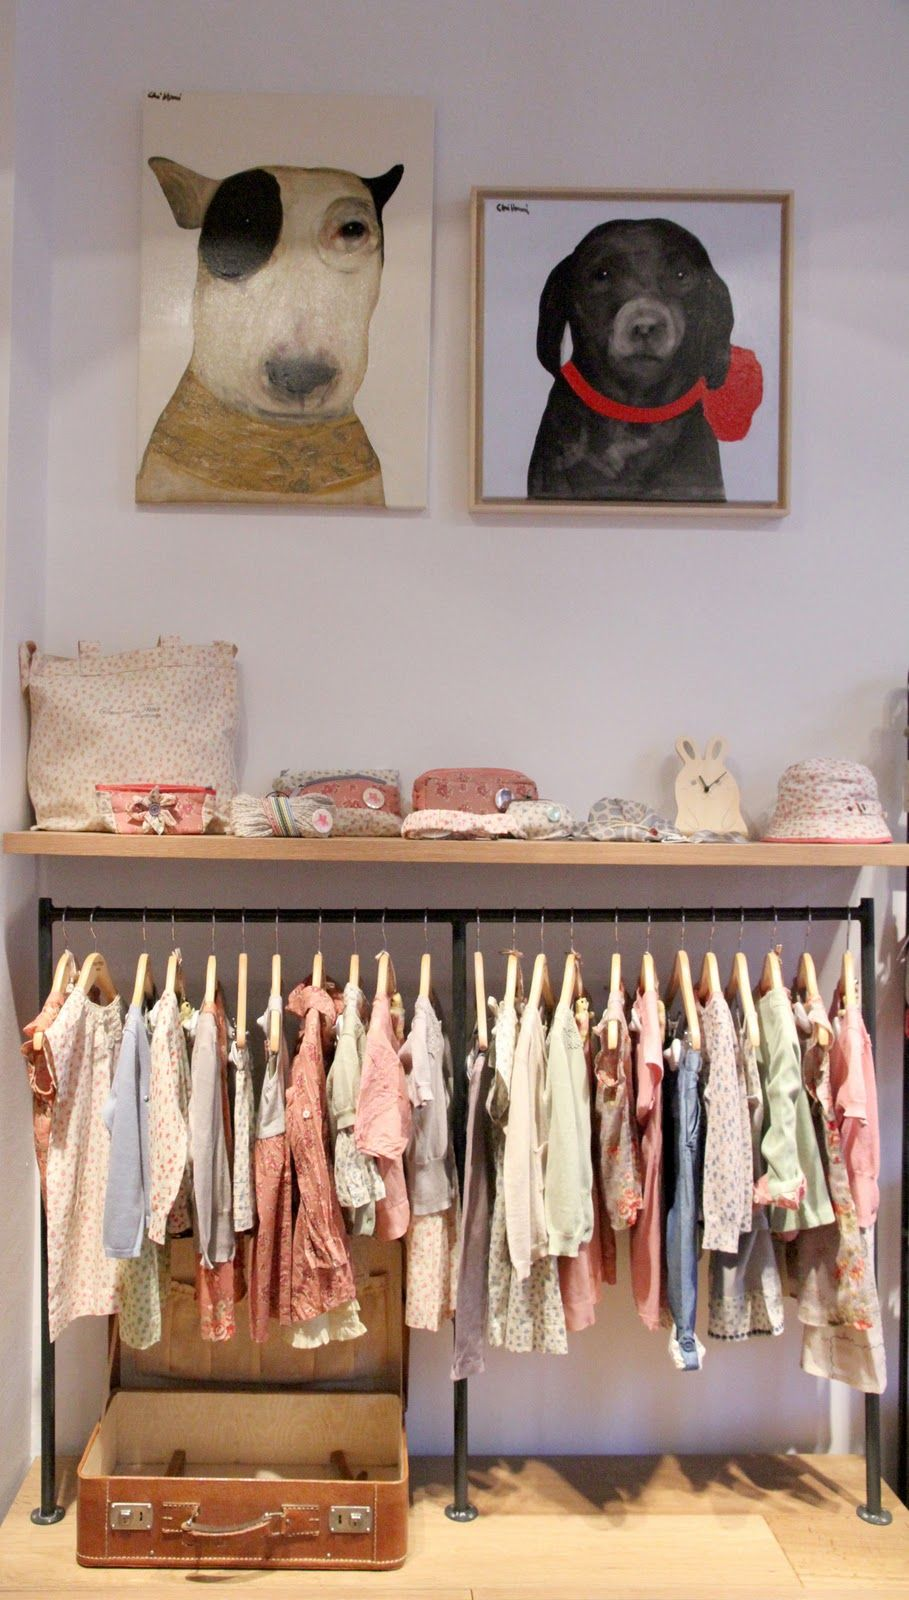 Love this dog art and using an open speed rail for clothing storage